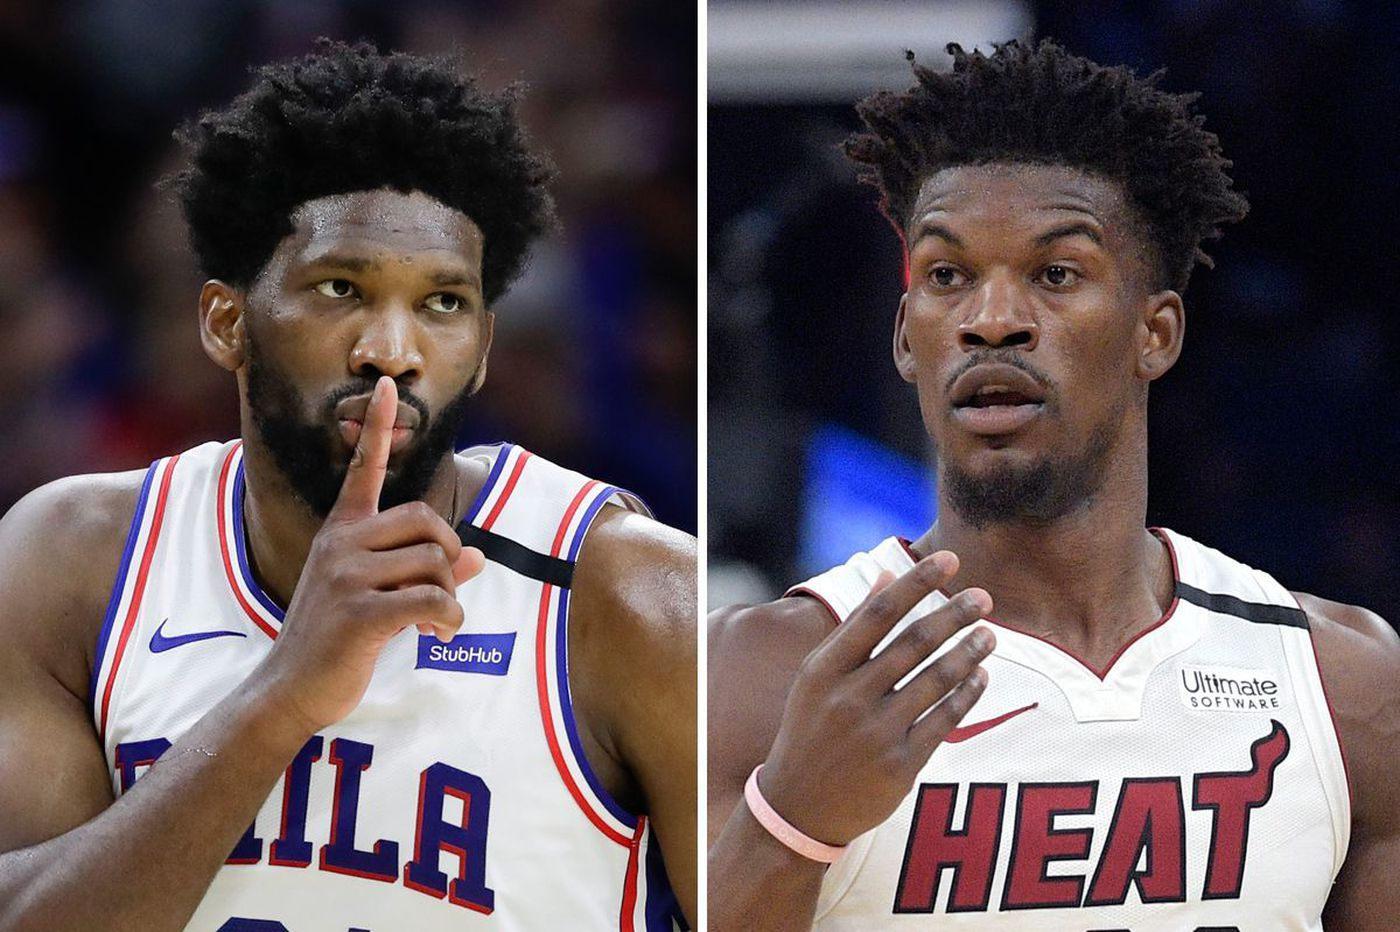 Sixers mailbag: Chances of Joel Embiid wanting to reunite with Jimmy Butler and more